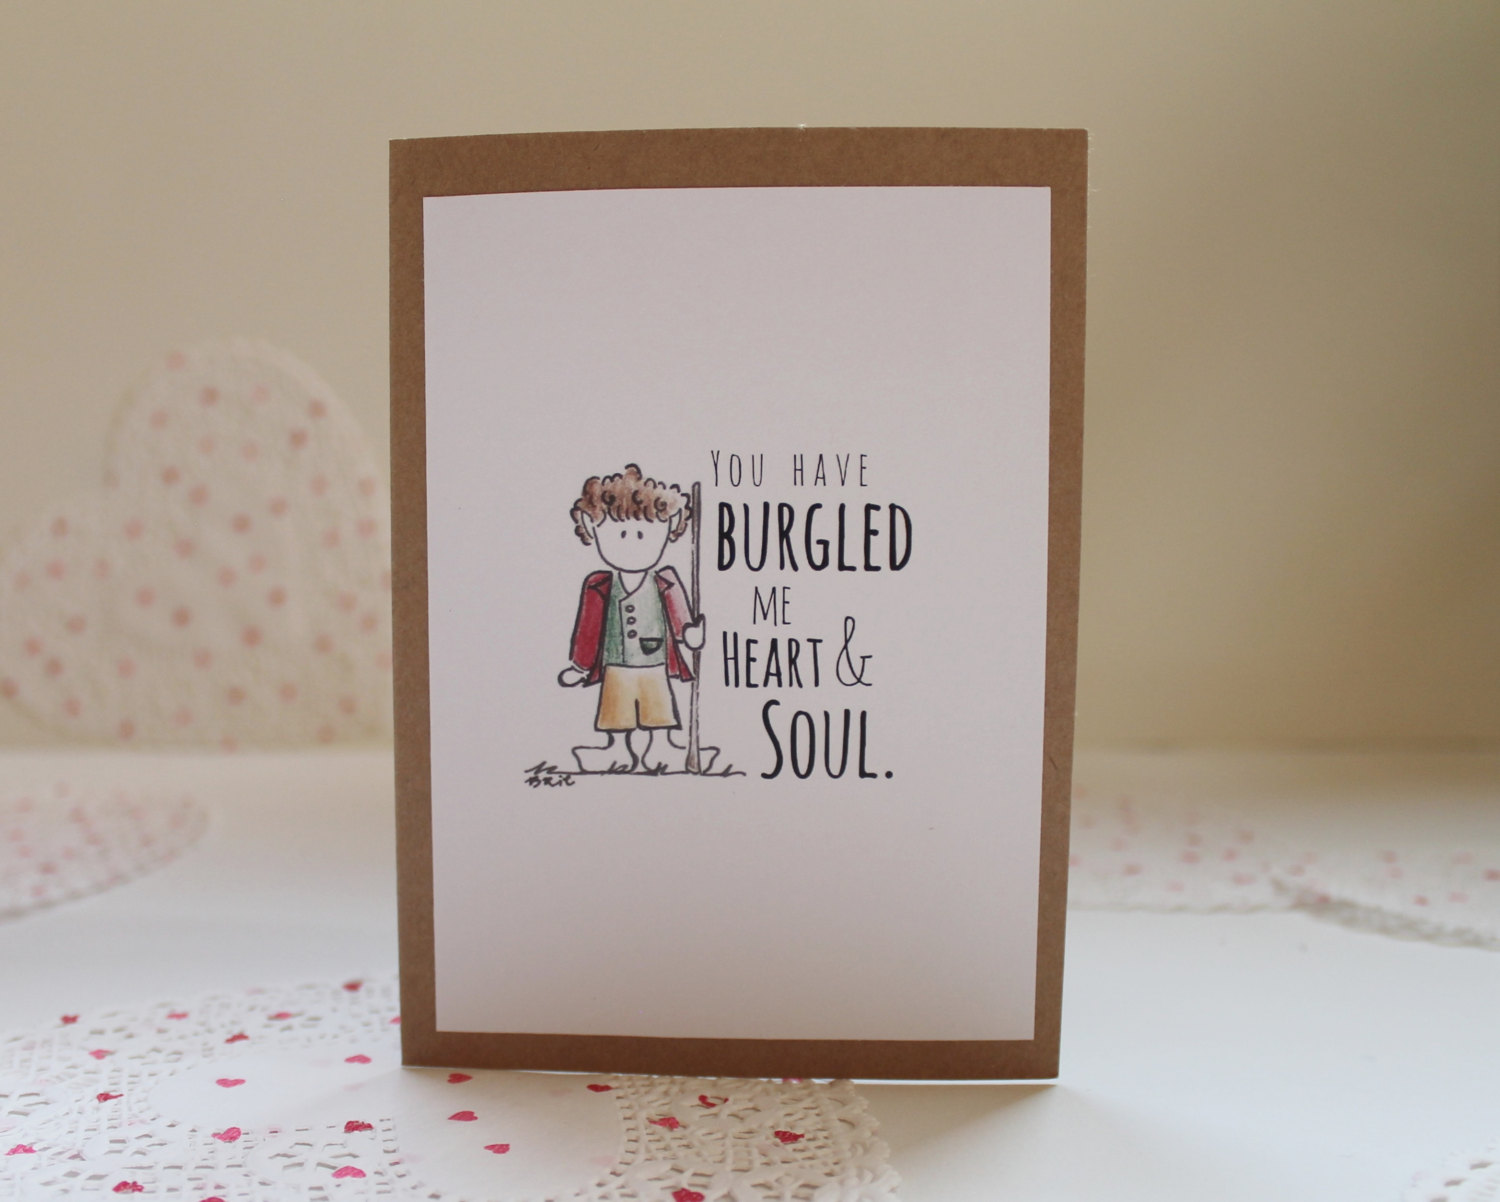 Say Happy Valentines Day With These Geeky Cards – What to Say on Valentines Card